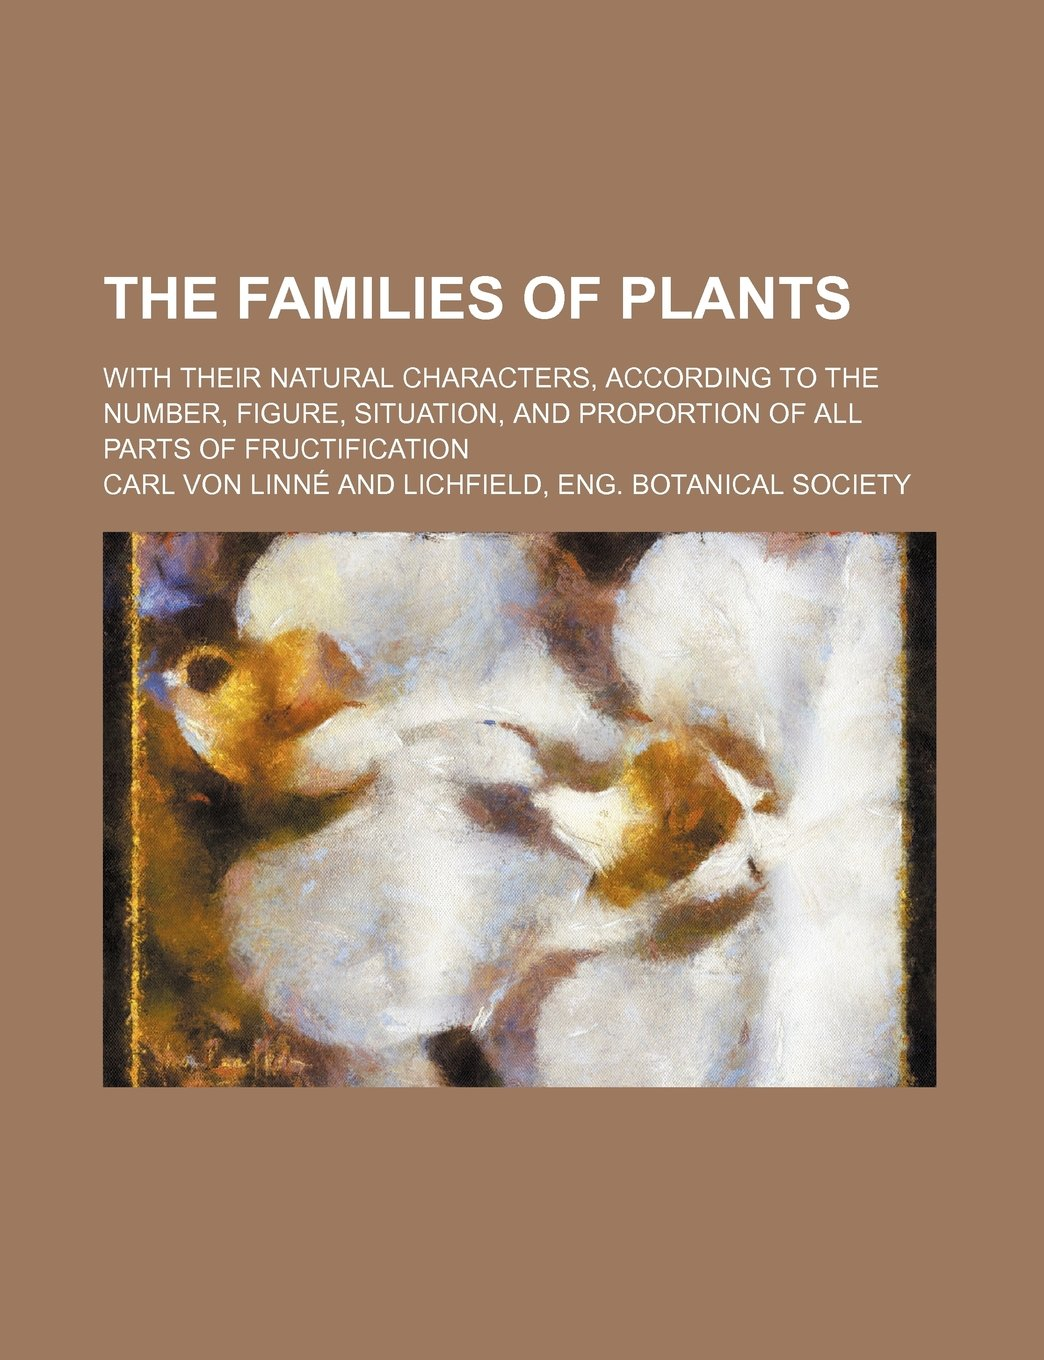 Read Online The families of plants; with their natural characters, according to the number, figure, situation, and proportion of all parts of fructification PDF